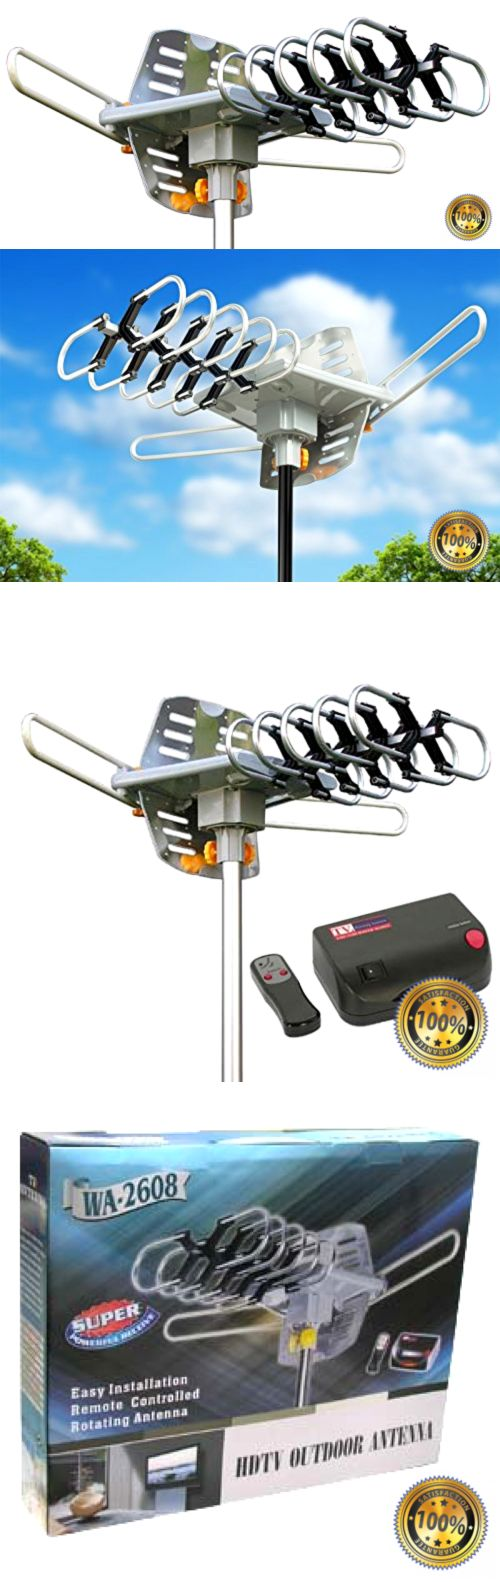 Antennas and Dishes: Amplified Hd Digital Outdoor Hdtv Antenna 150 Miles Long Range With Motorized 36 -> BUY IT NOW ONLY: $74.22 on eBay!